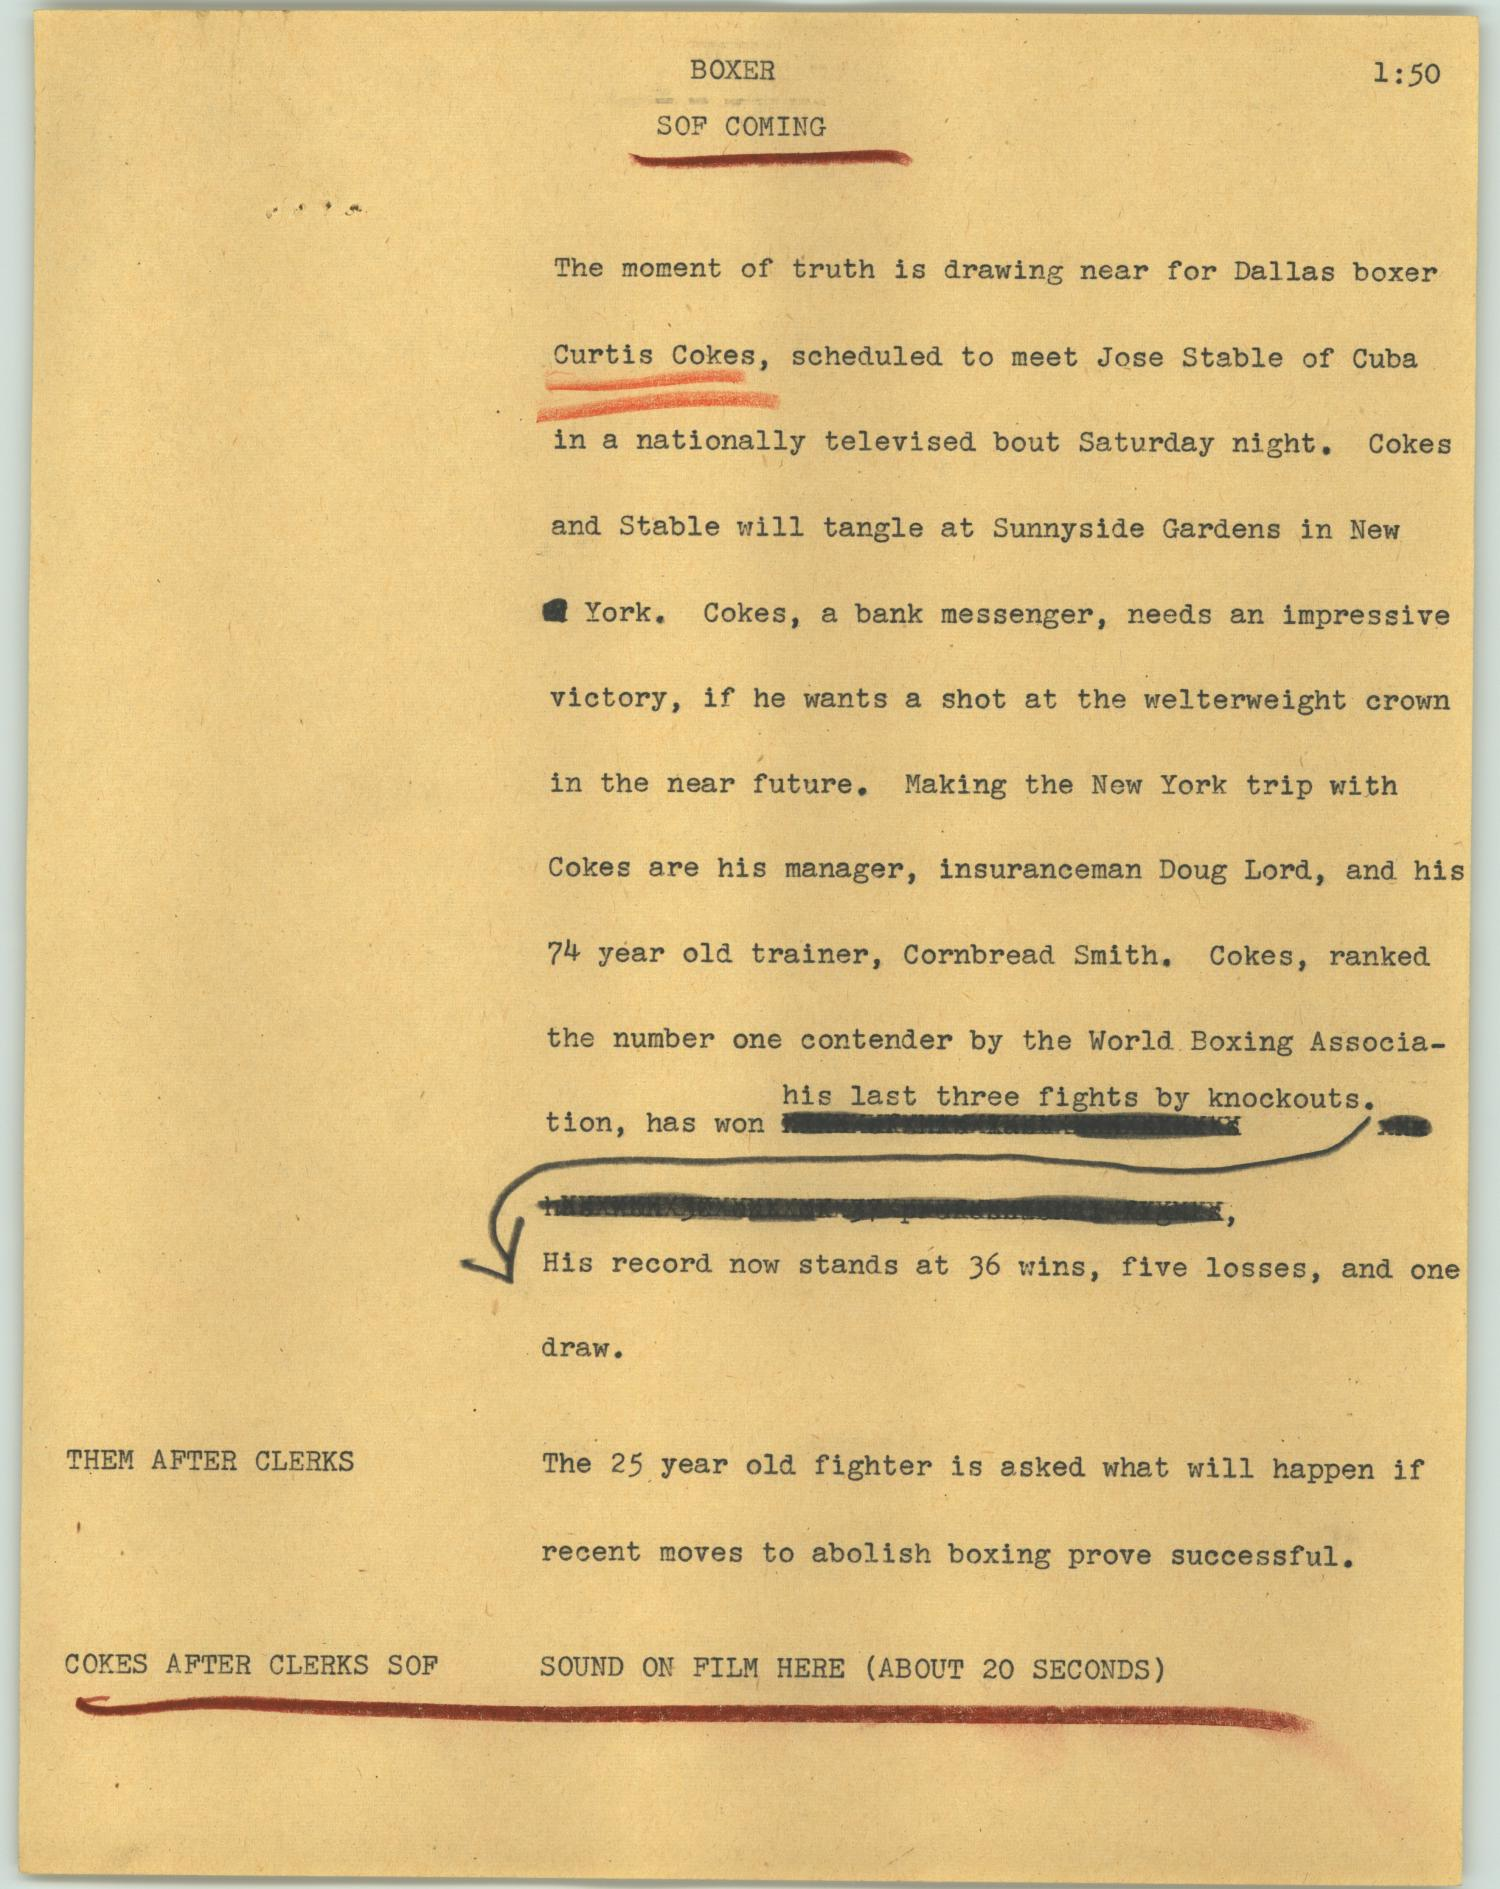 yellow page with typewriter text. The heading reads 'boxer.' Some lines of text are underlined in red, while other lines are blacked out with an arrow drawn to the next line down.